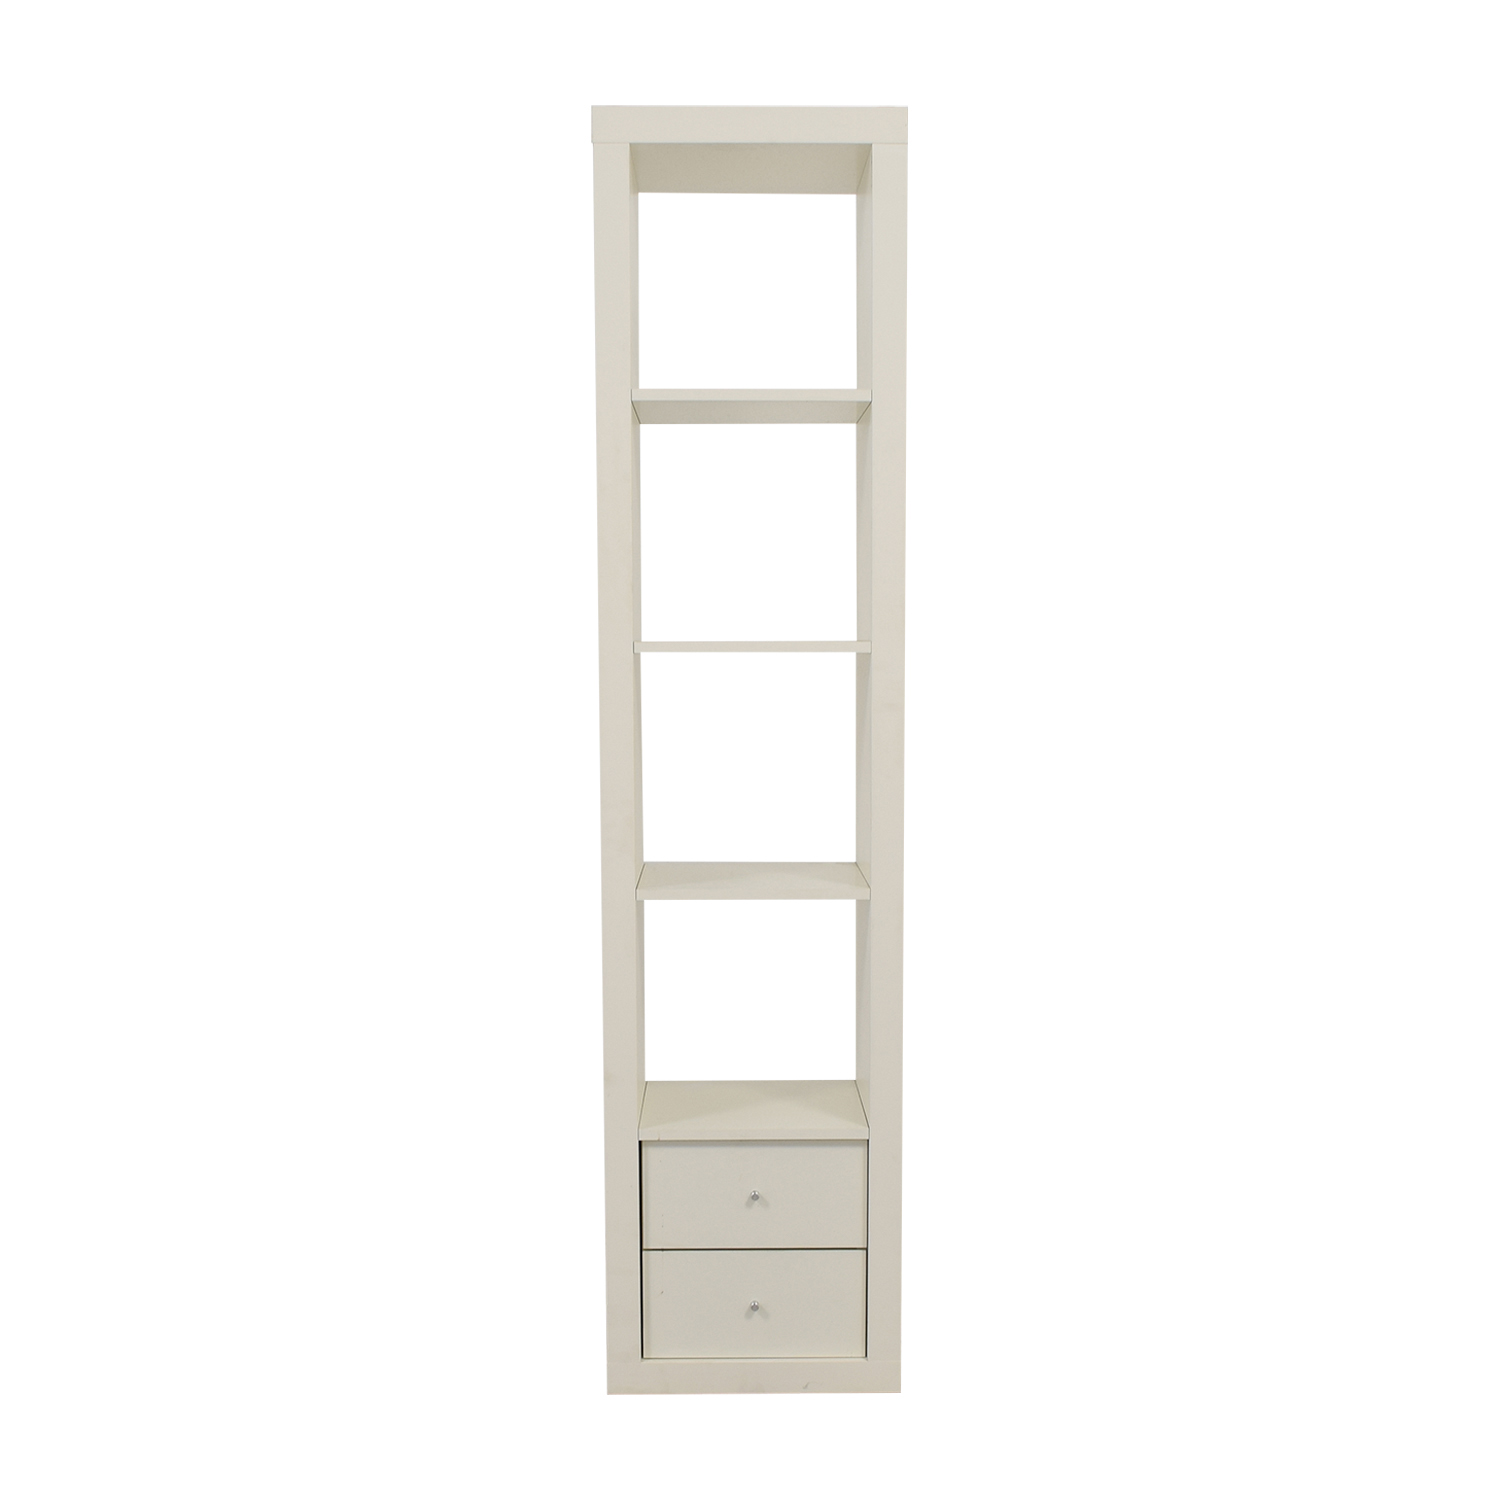 The Container Store White Two-Drawer Book  Shelf / Bookcases & Shelving